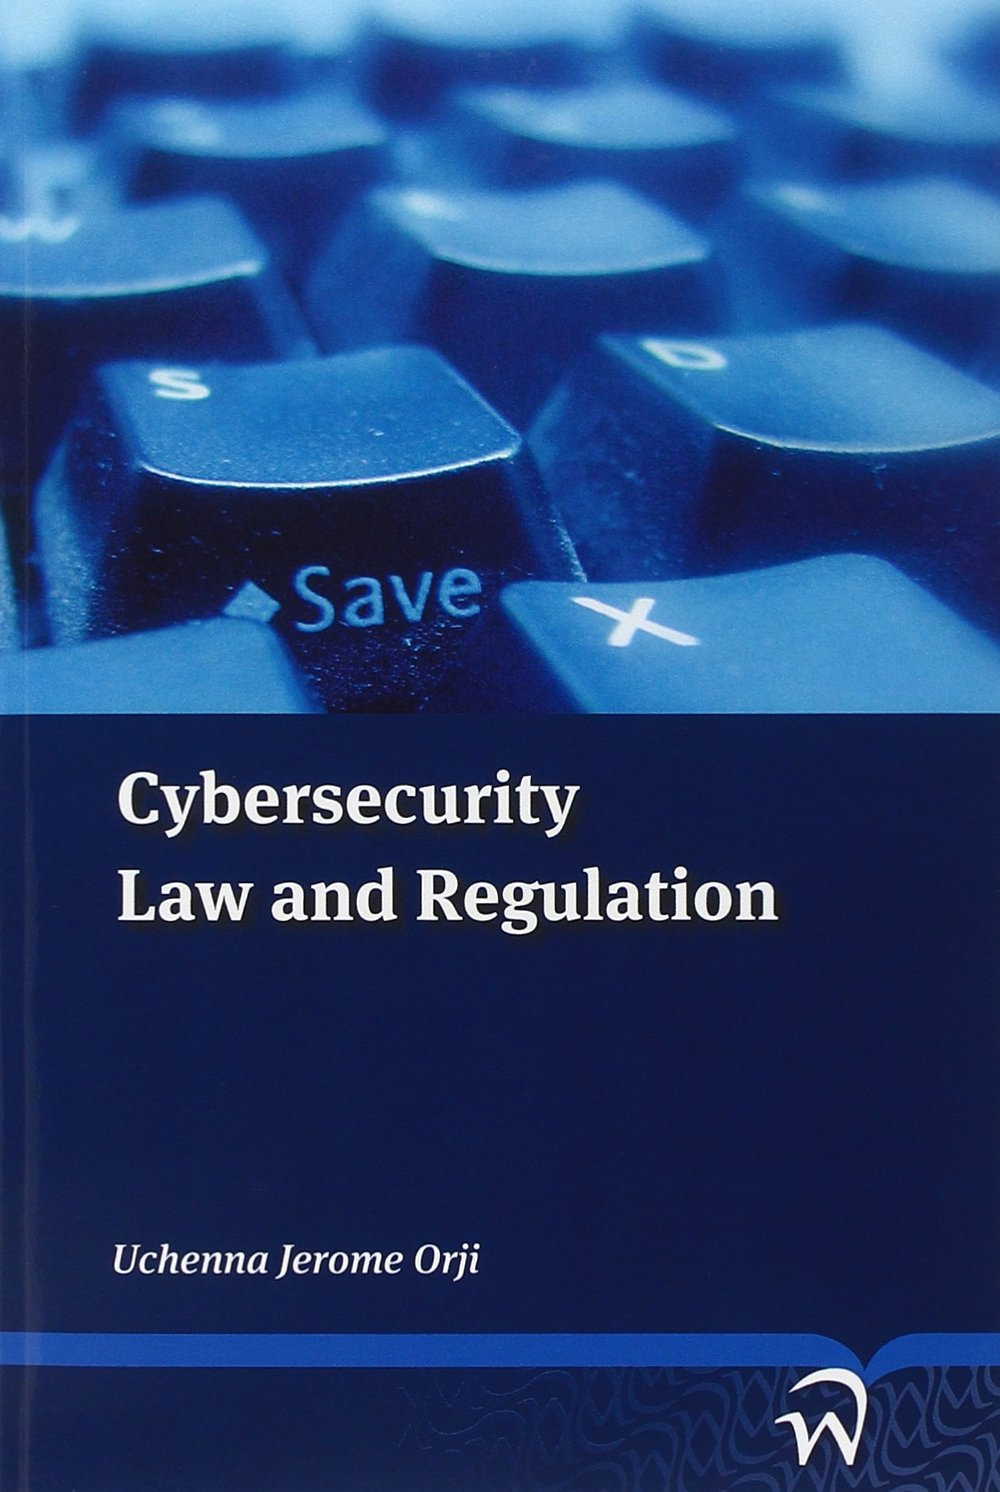 Download Cybersecurity: Law And Regulation 